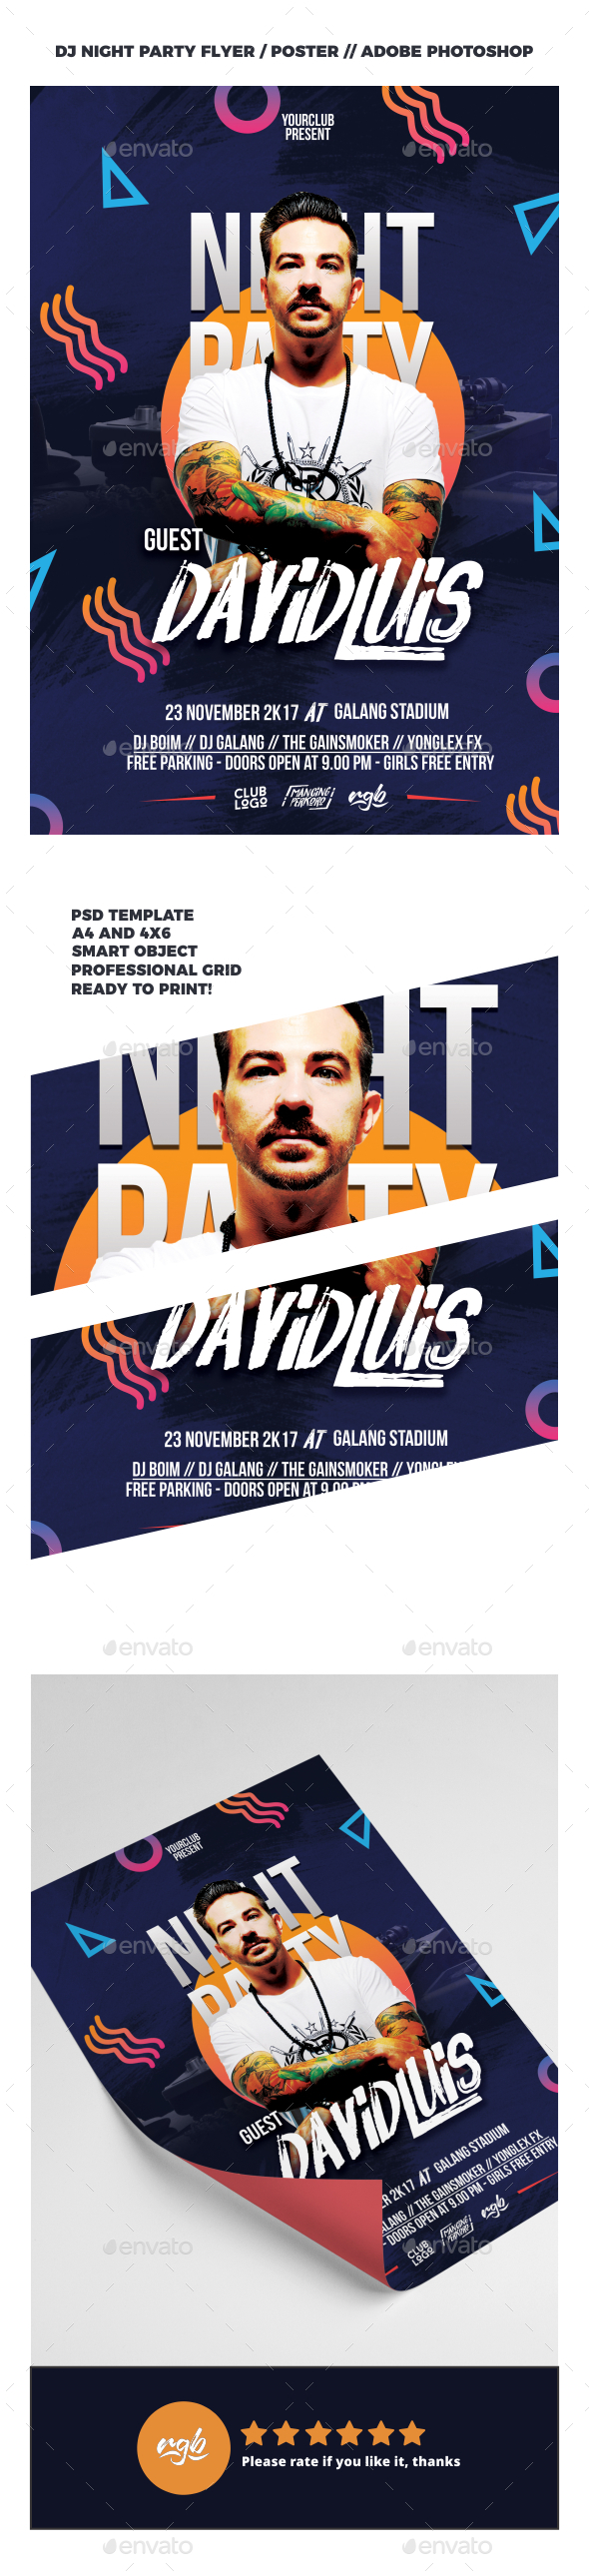 DJ Night Party Flyer Template - Clubs & Parties Events